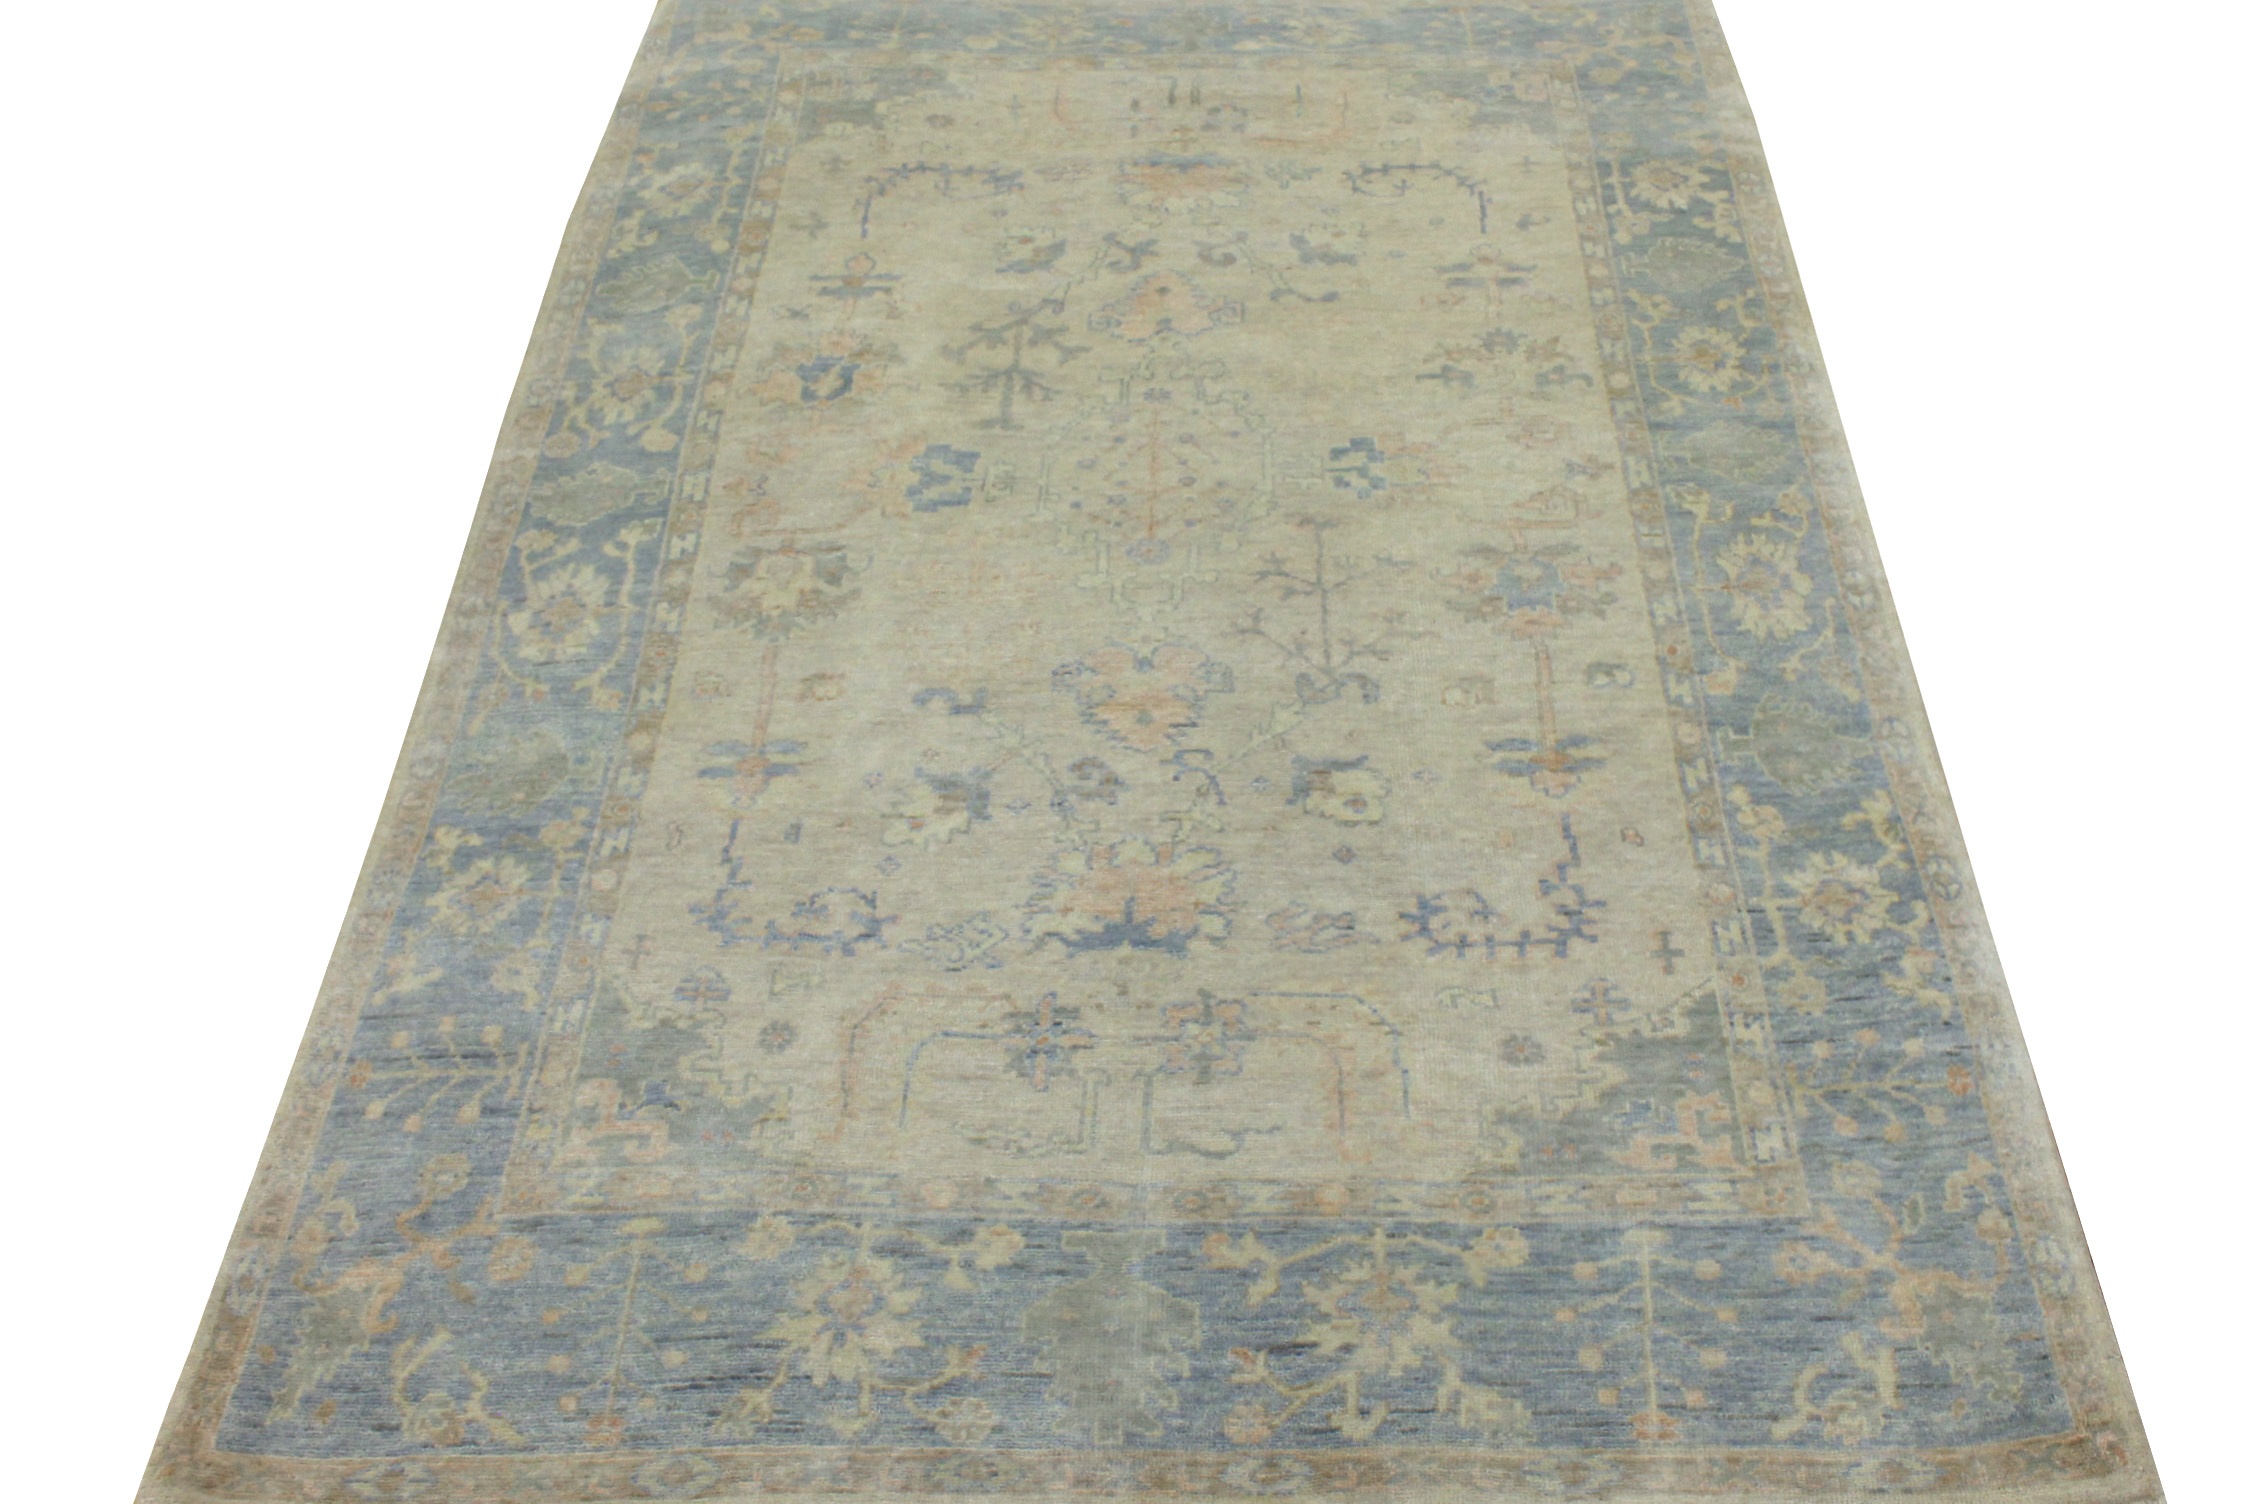 6x9 Oushak Hand Knotted Wool Area Rug - MR20369